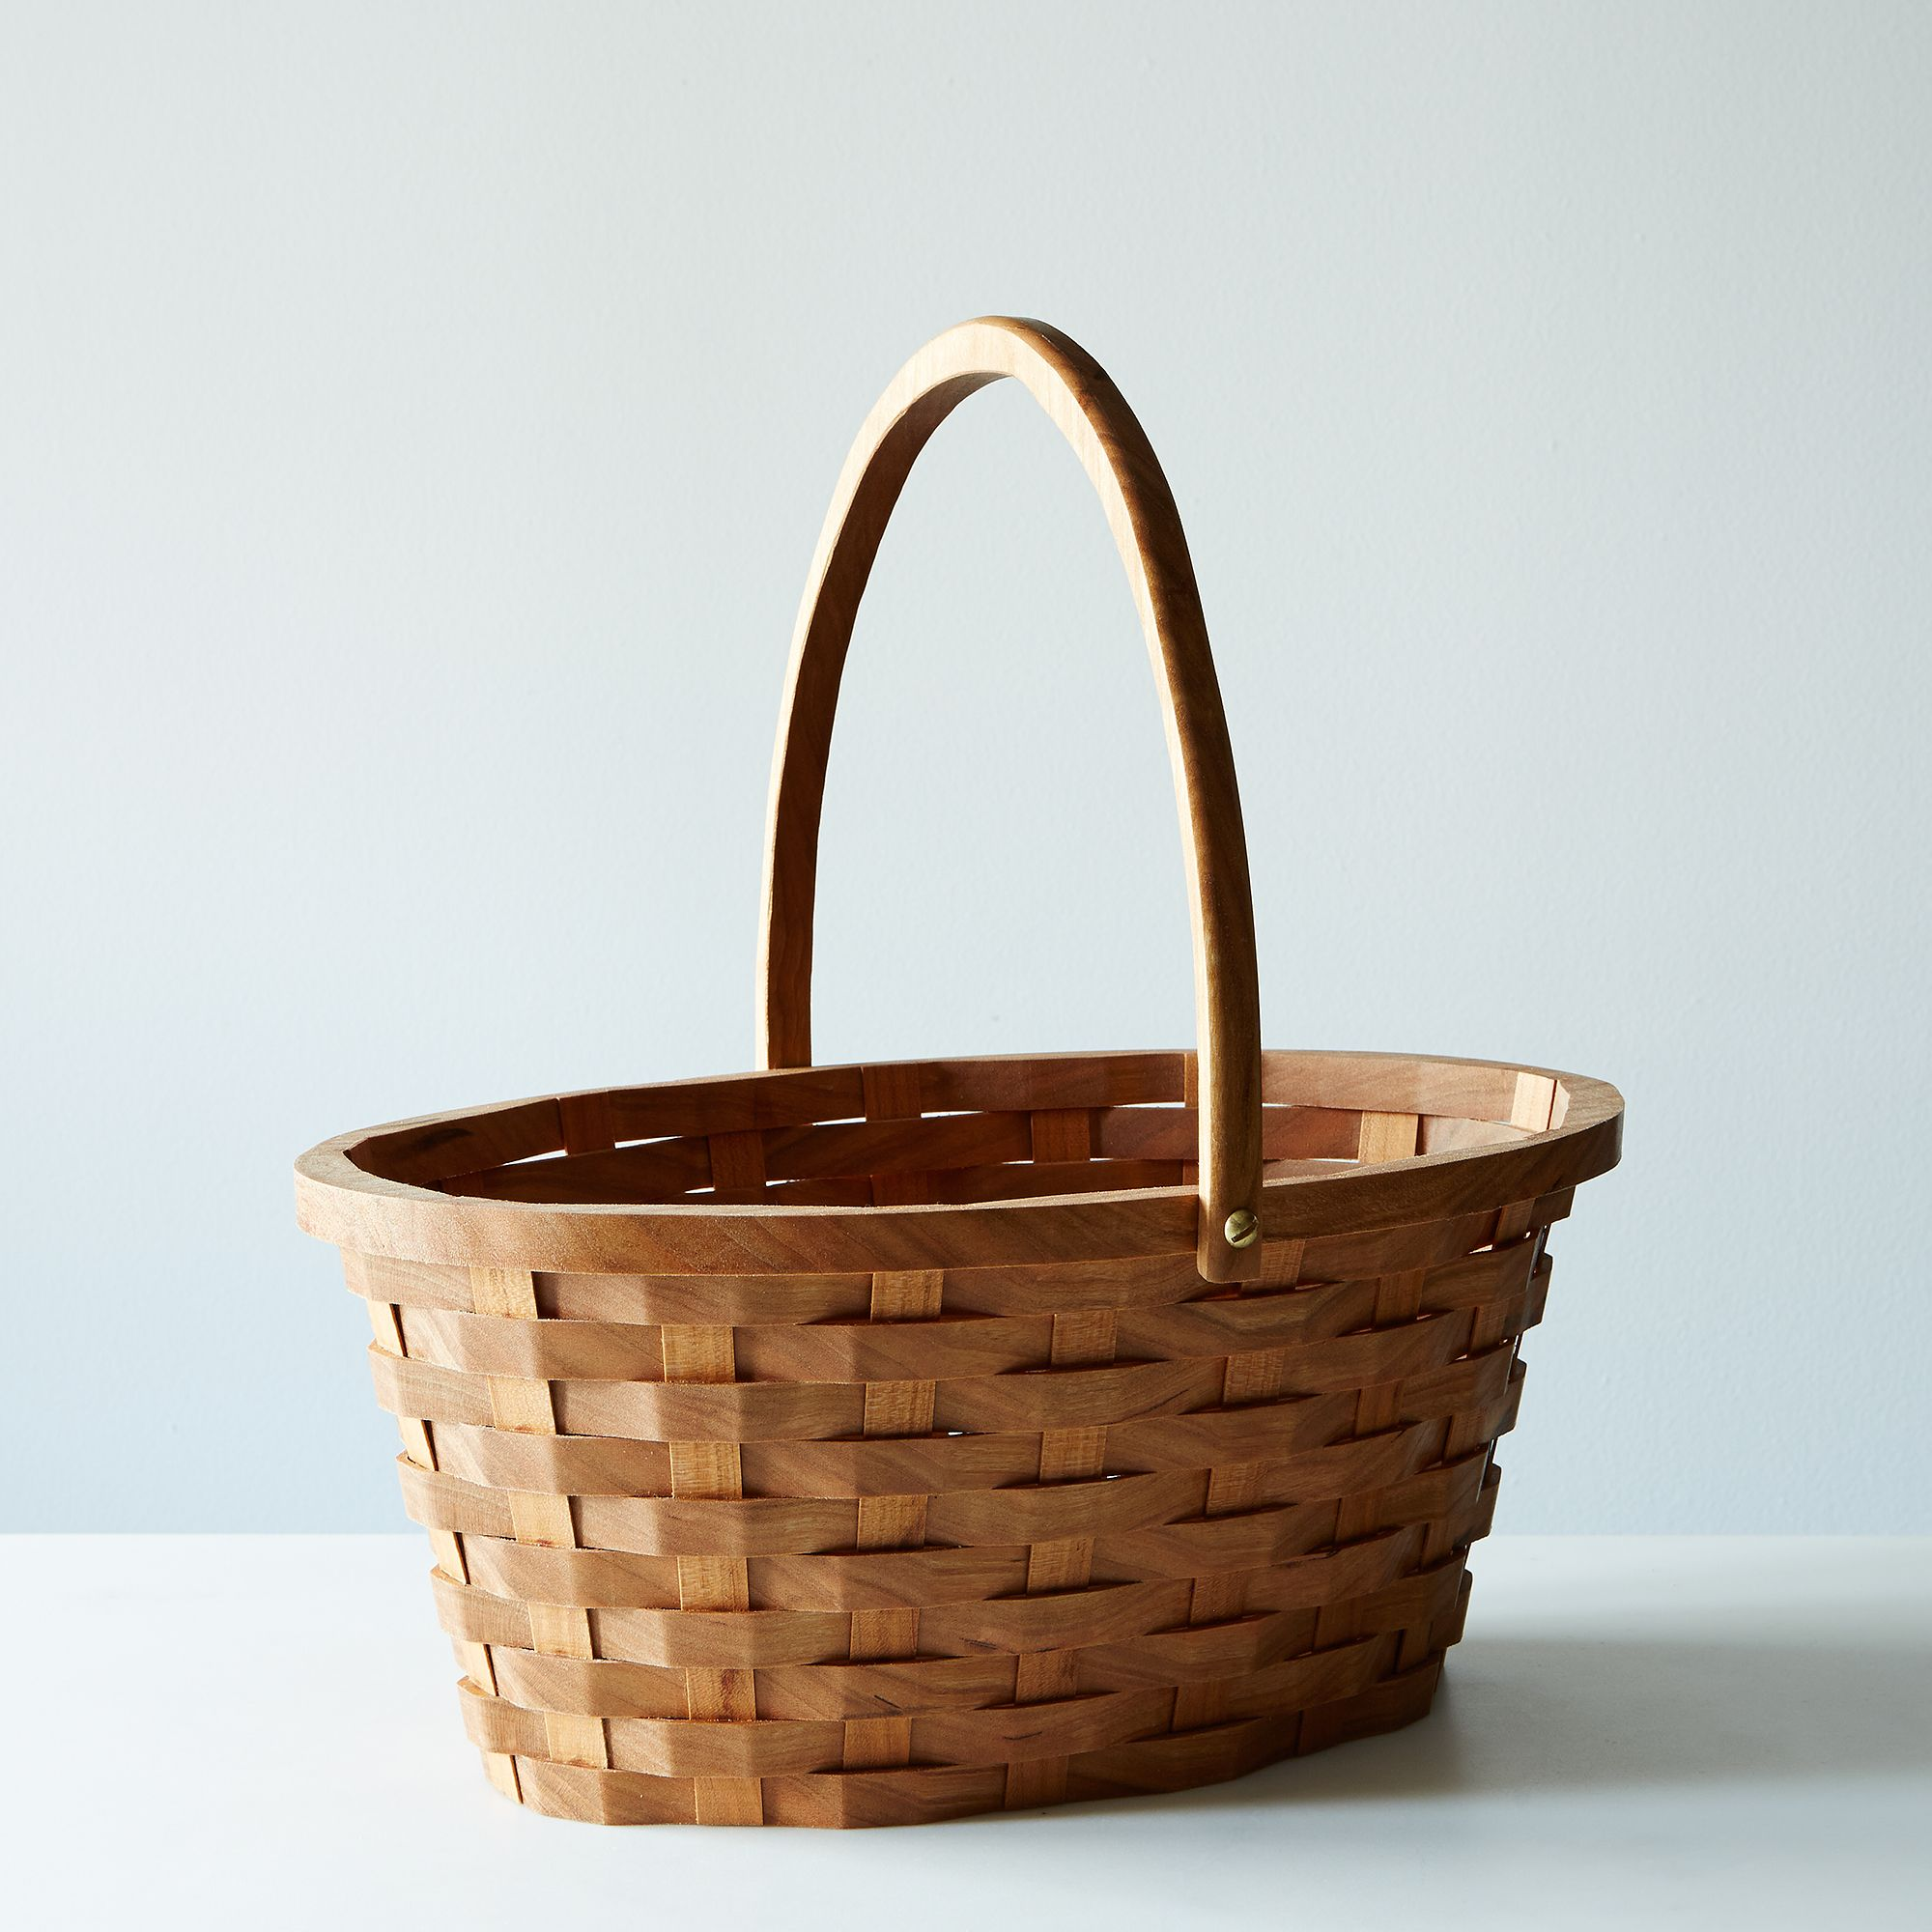 F66e48de a0f5 11e5 a190 0ef7535729df  baskets by debi wooden easter baskets cherry 6212 silo